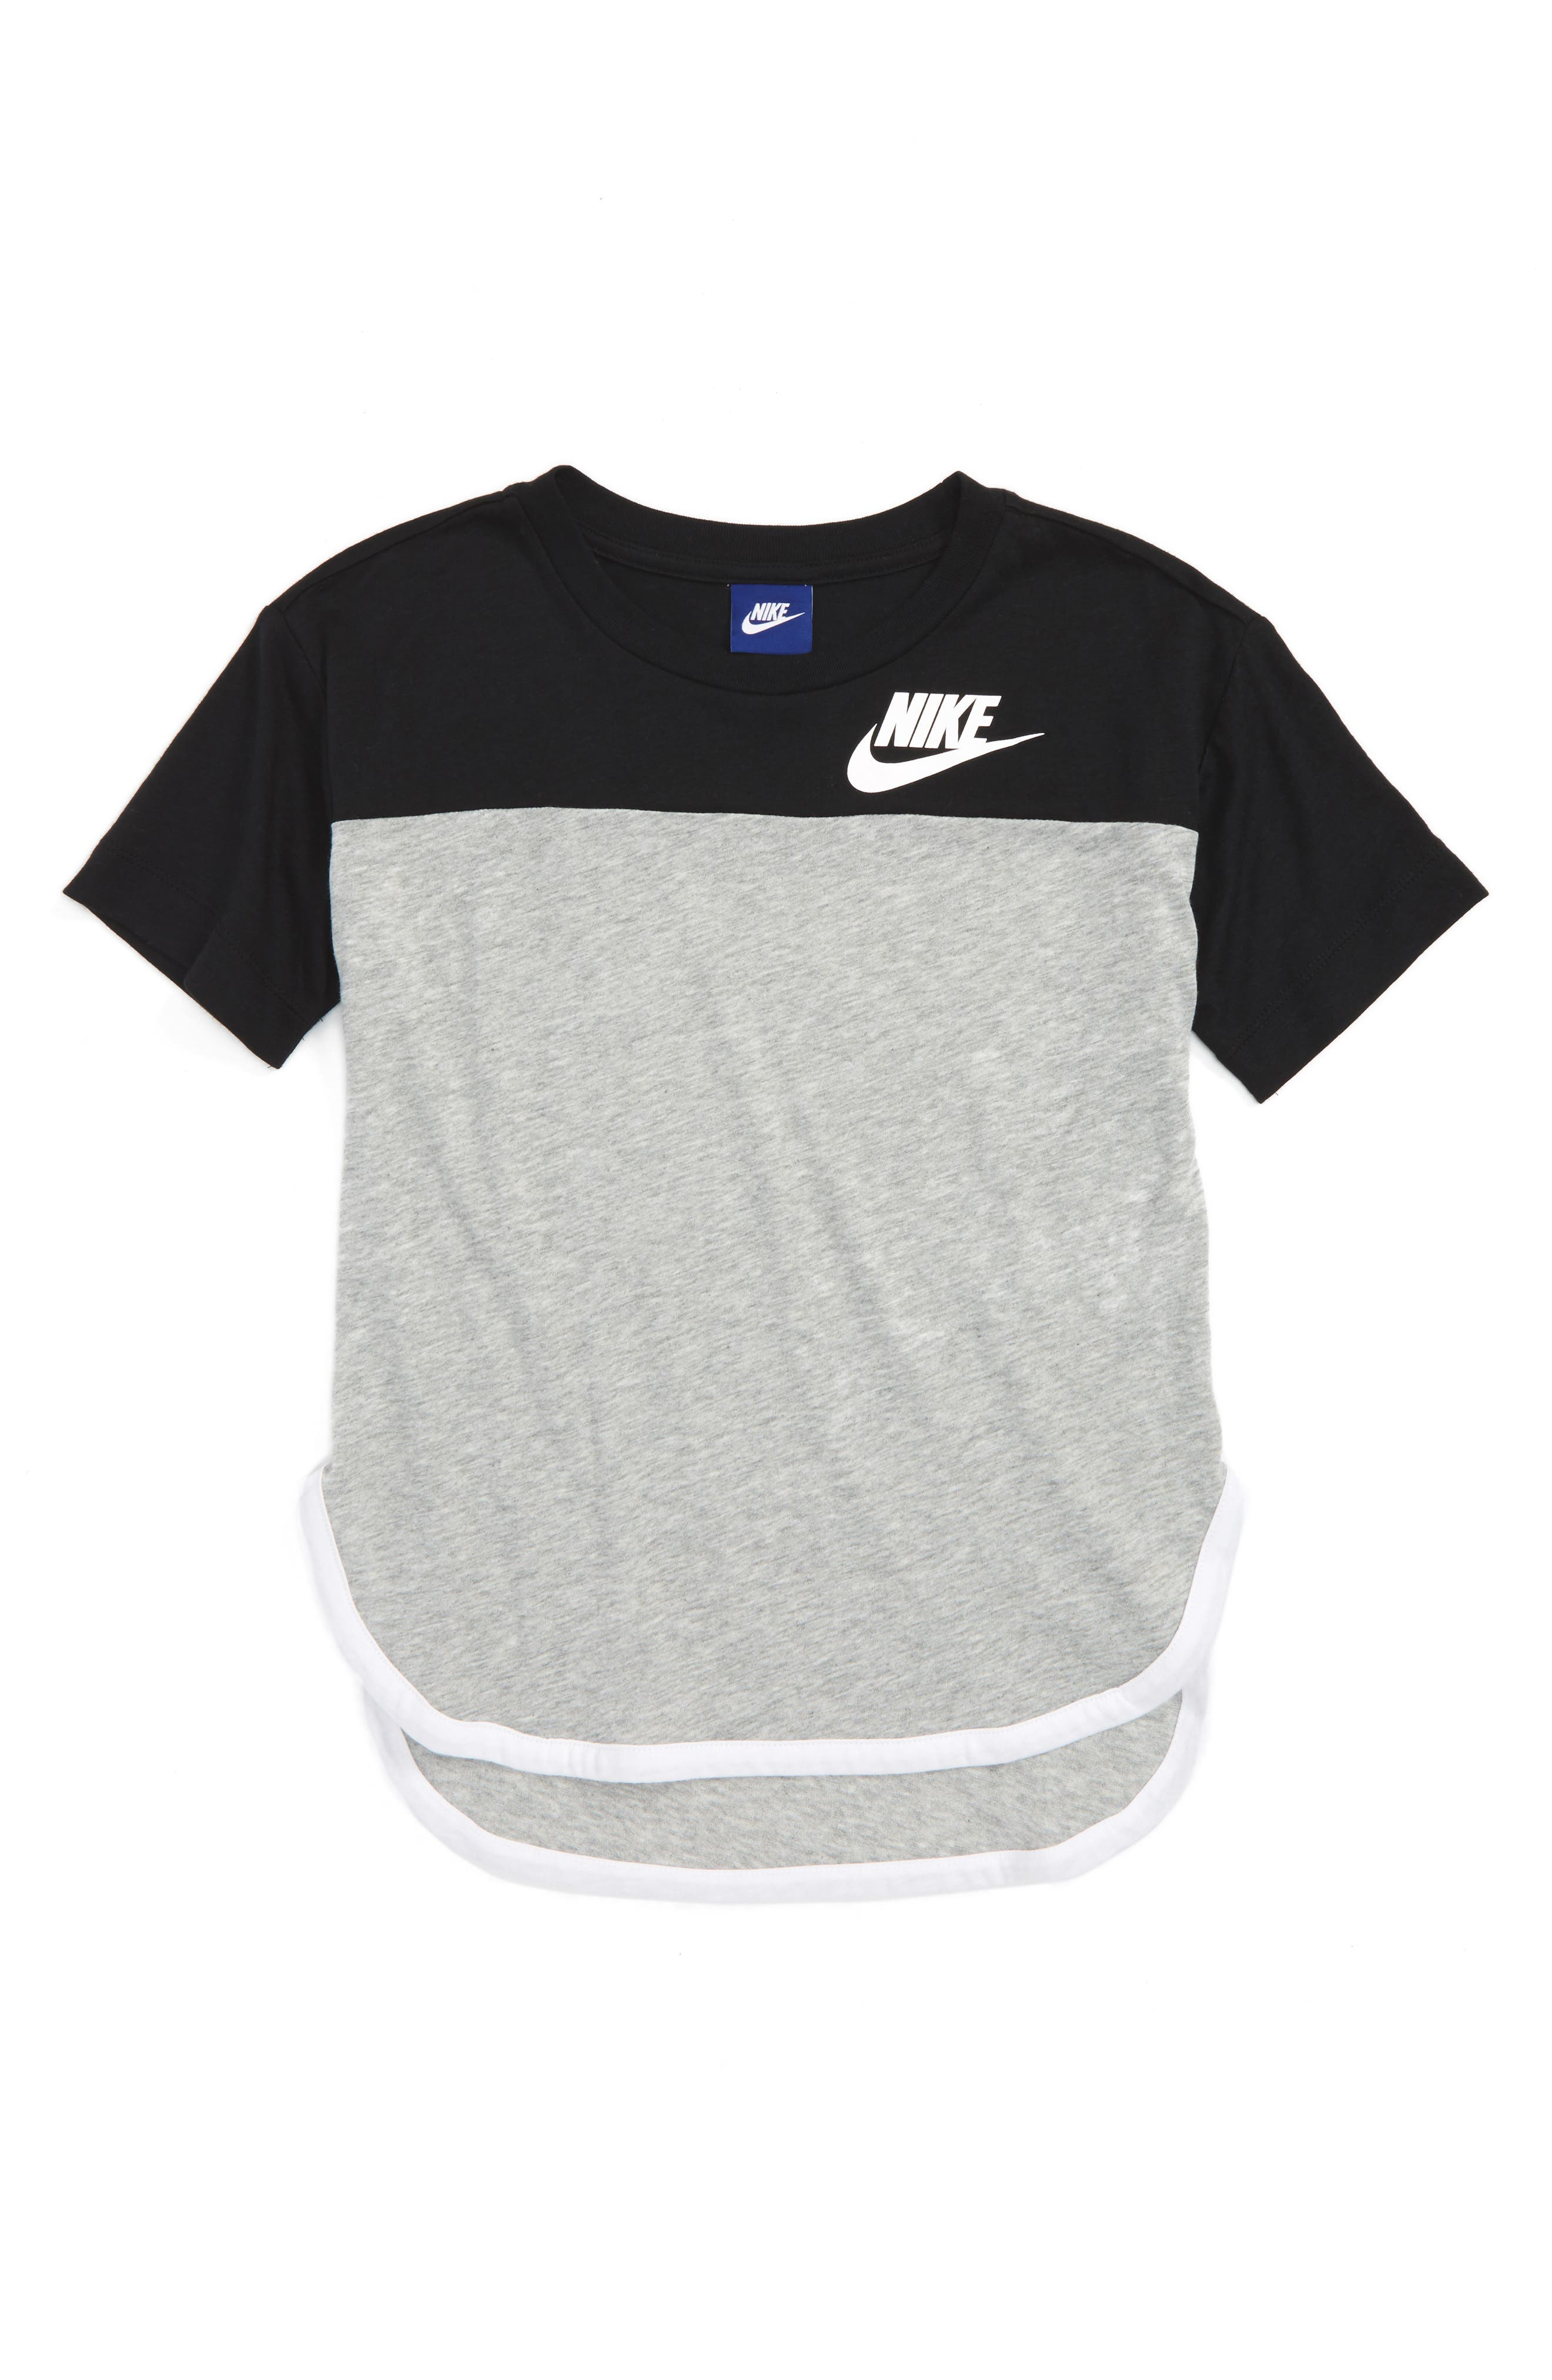 Sportswear Graphic Tee,                             Main thumbnail 1, color,                             010